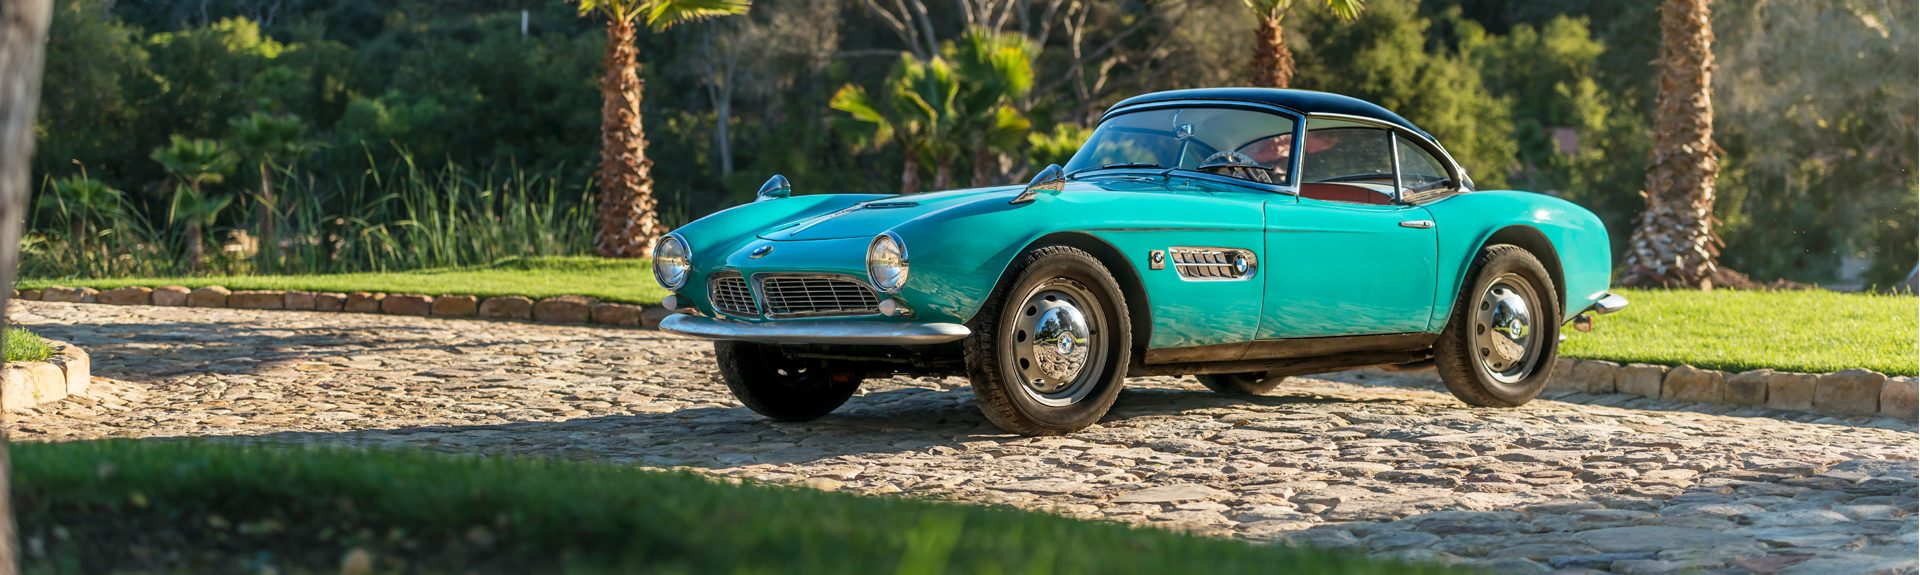 BMW 507 - Roadster